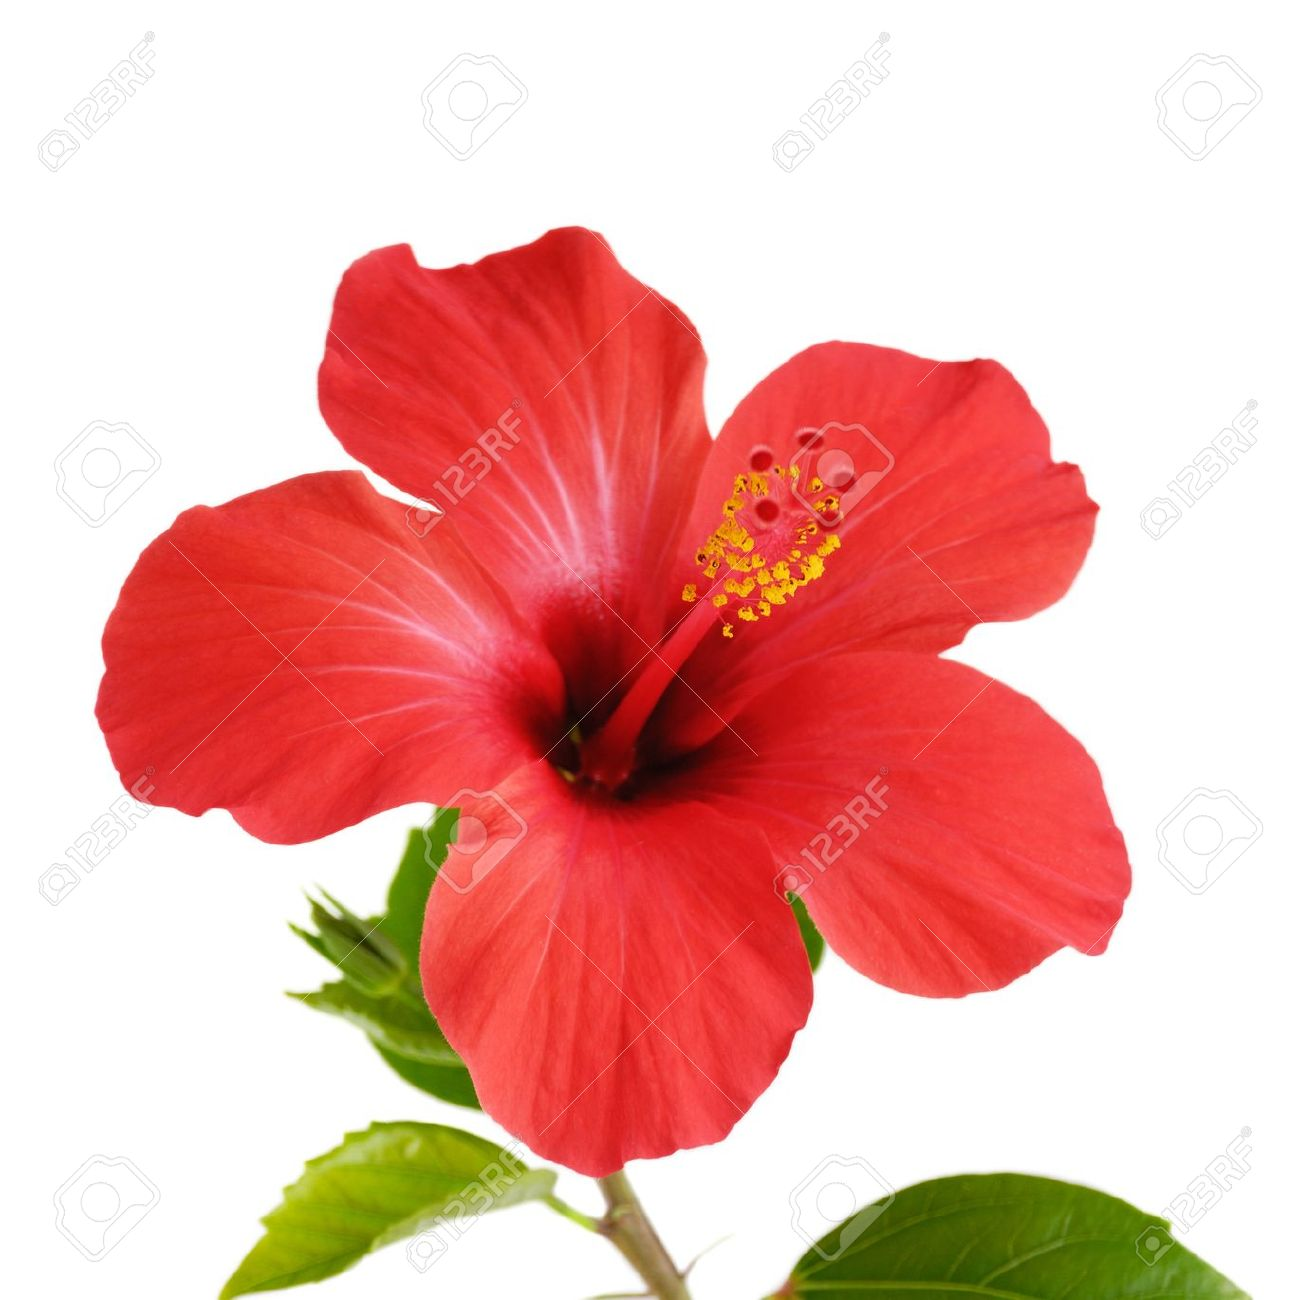 Red Hibiscus Flower Head Over White Background Stock Photo Picture